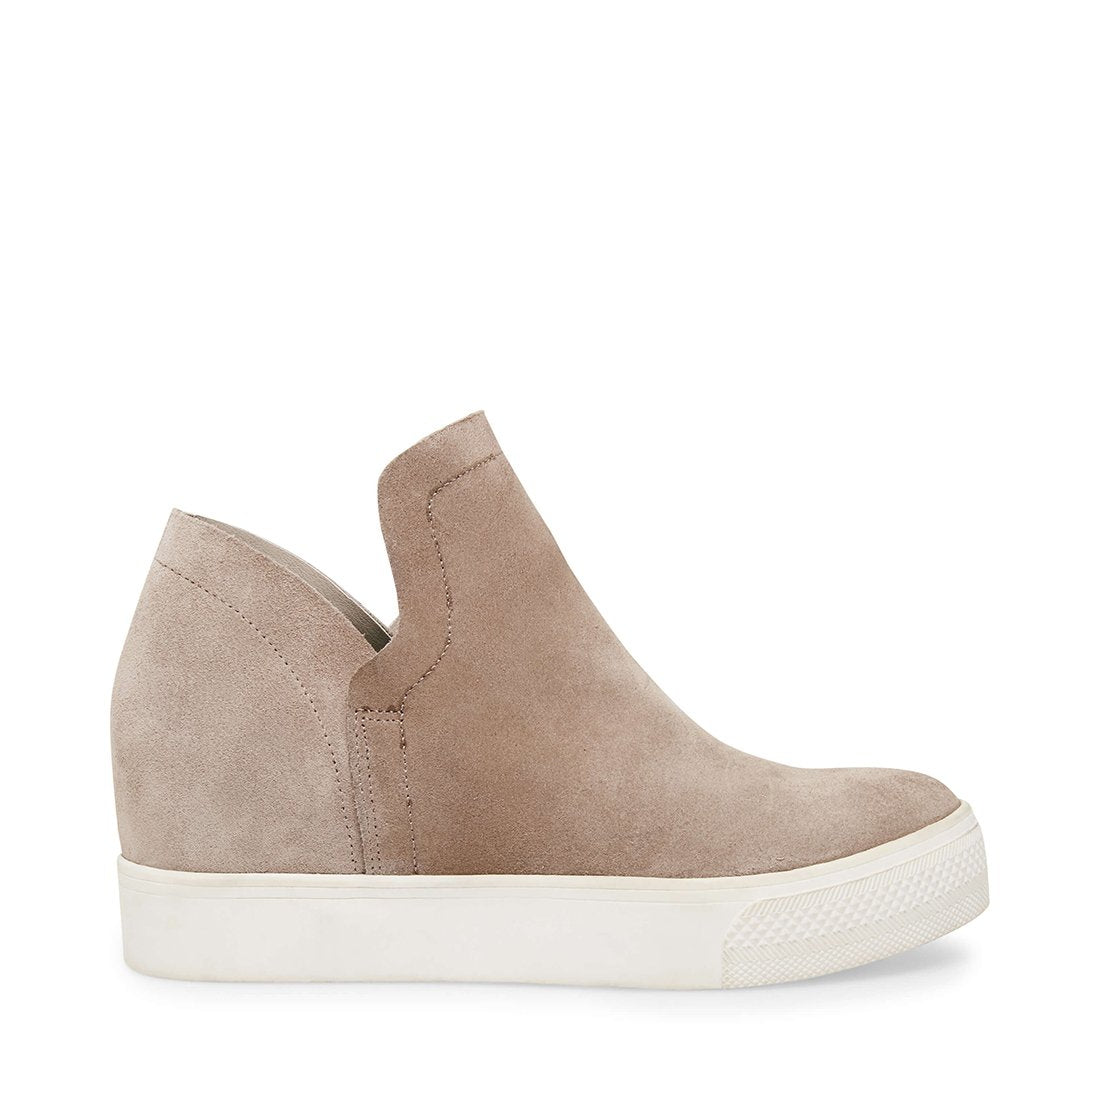 1fd3df67972 Wrangle taupe suede steve madden jpg 1500x1100 Steve madden wedge sneakers